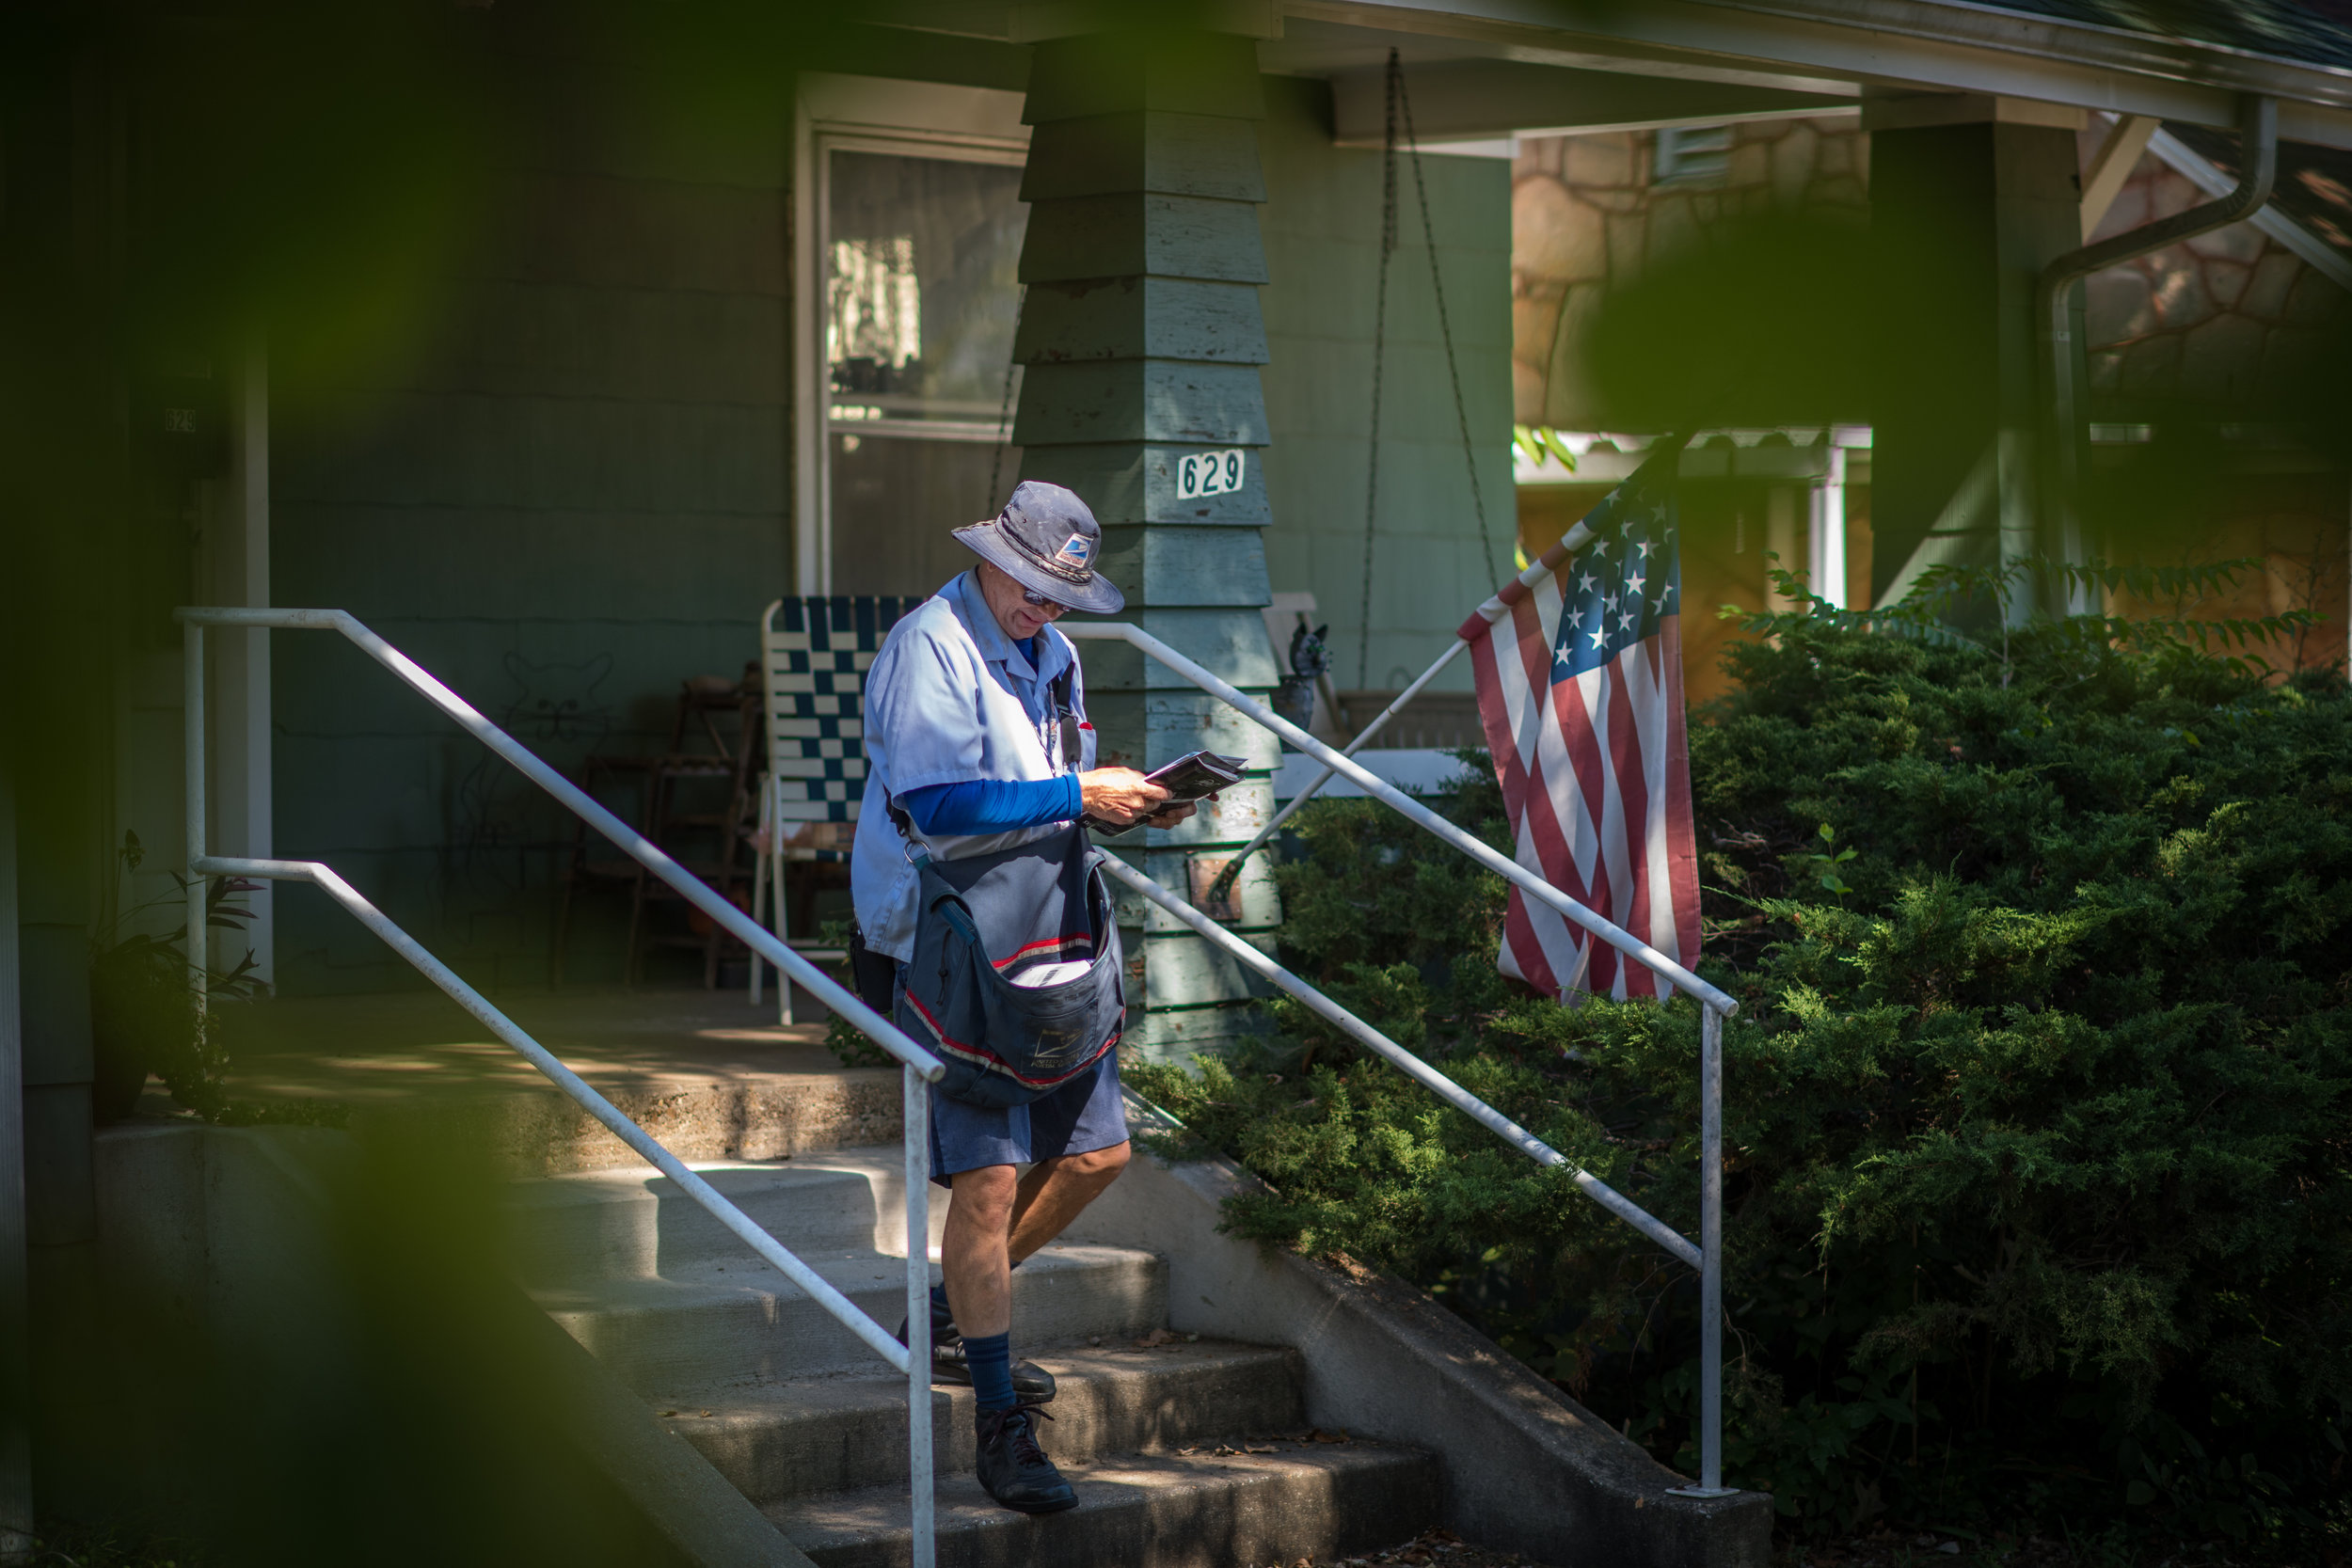 Greg delivering mail on his last week before retirement.